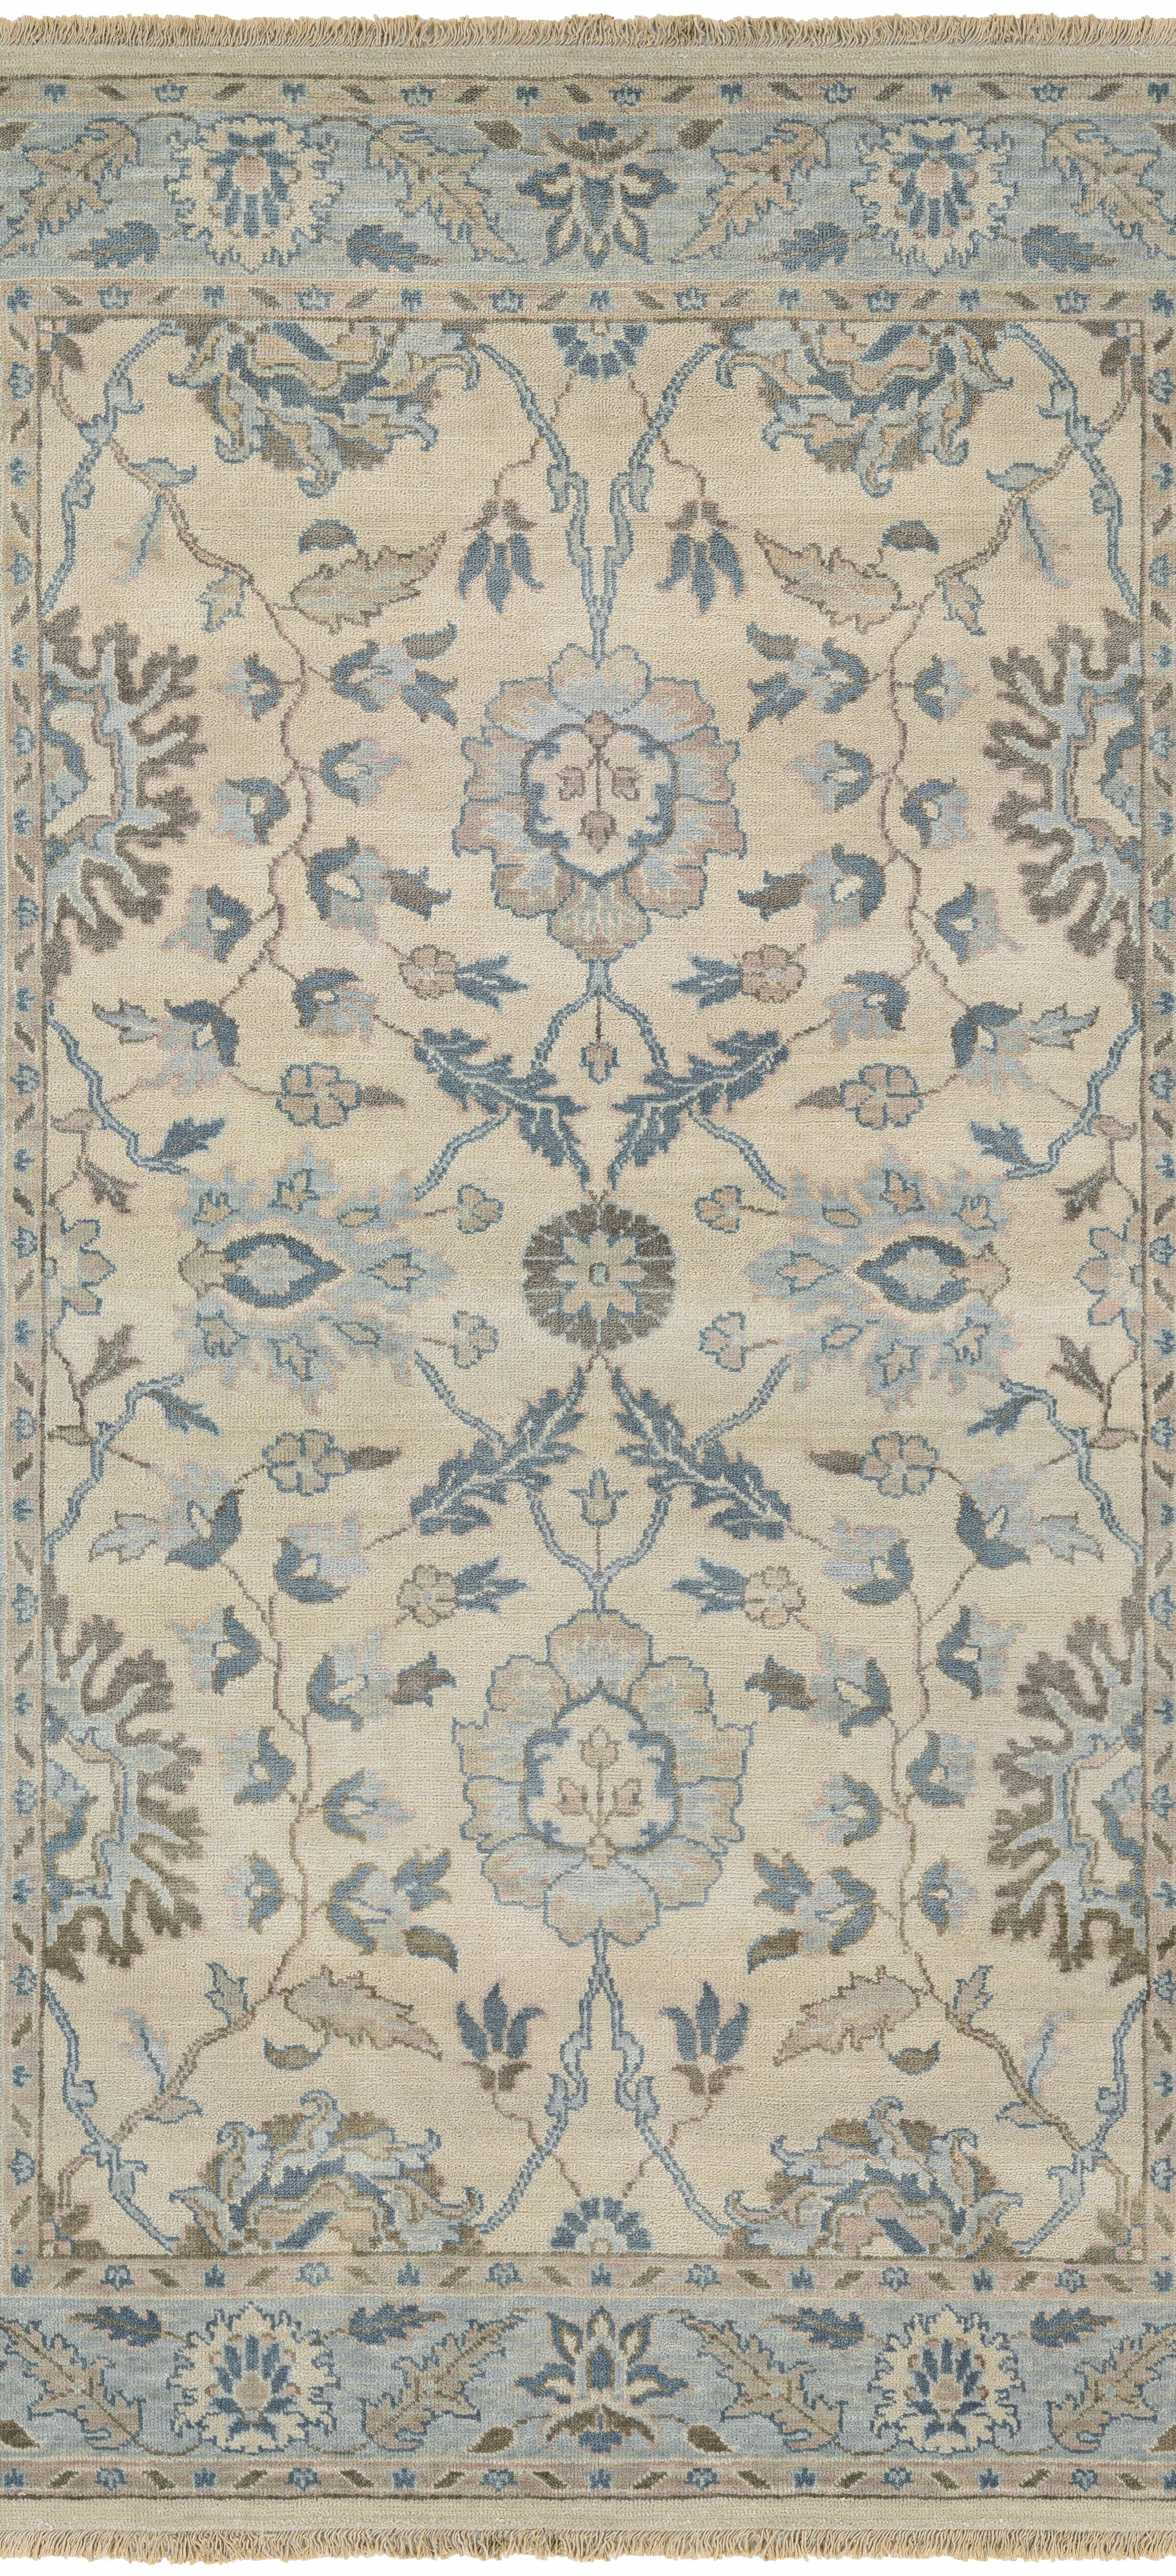 Arras Hand-Knotted Beige/Blue Area Rug Rug Size: Rectangle 5'6